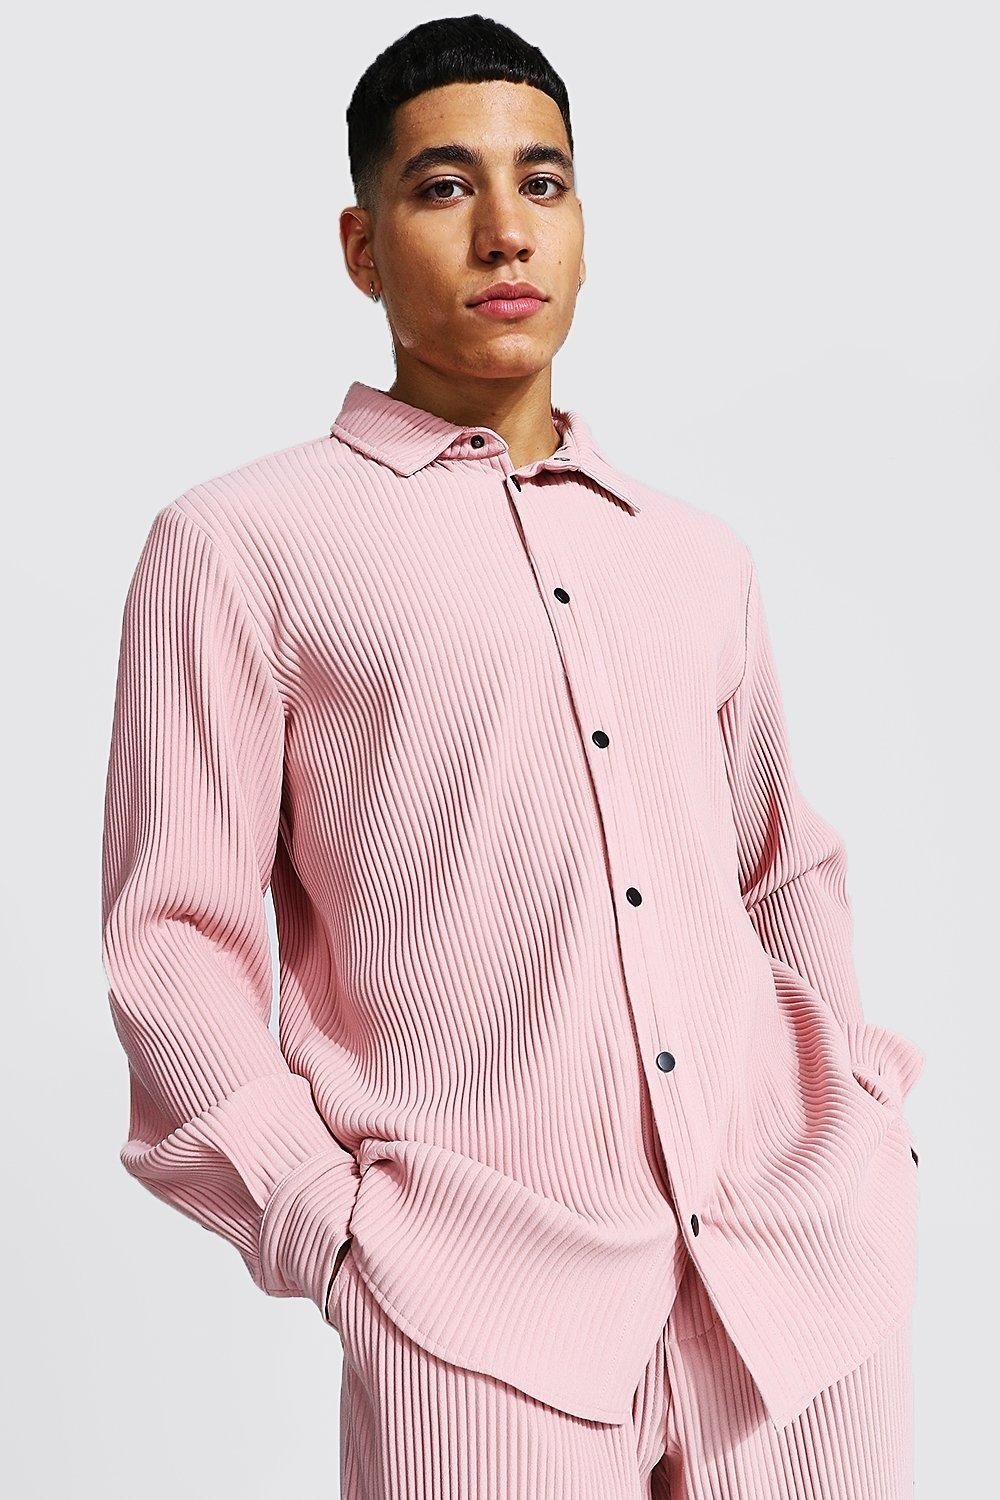 Model in a pleated pink shirt and matching pants